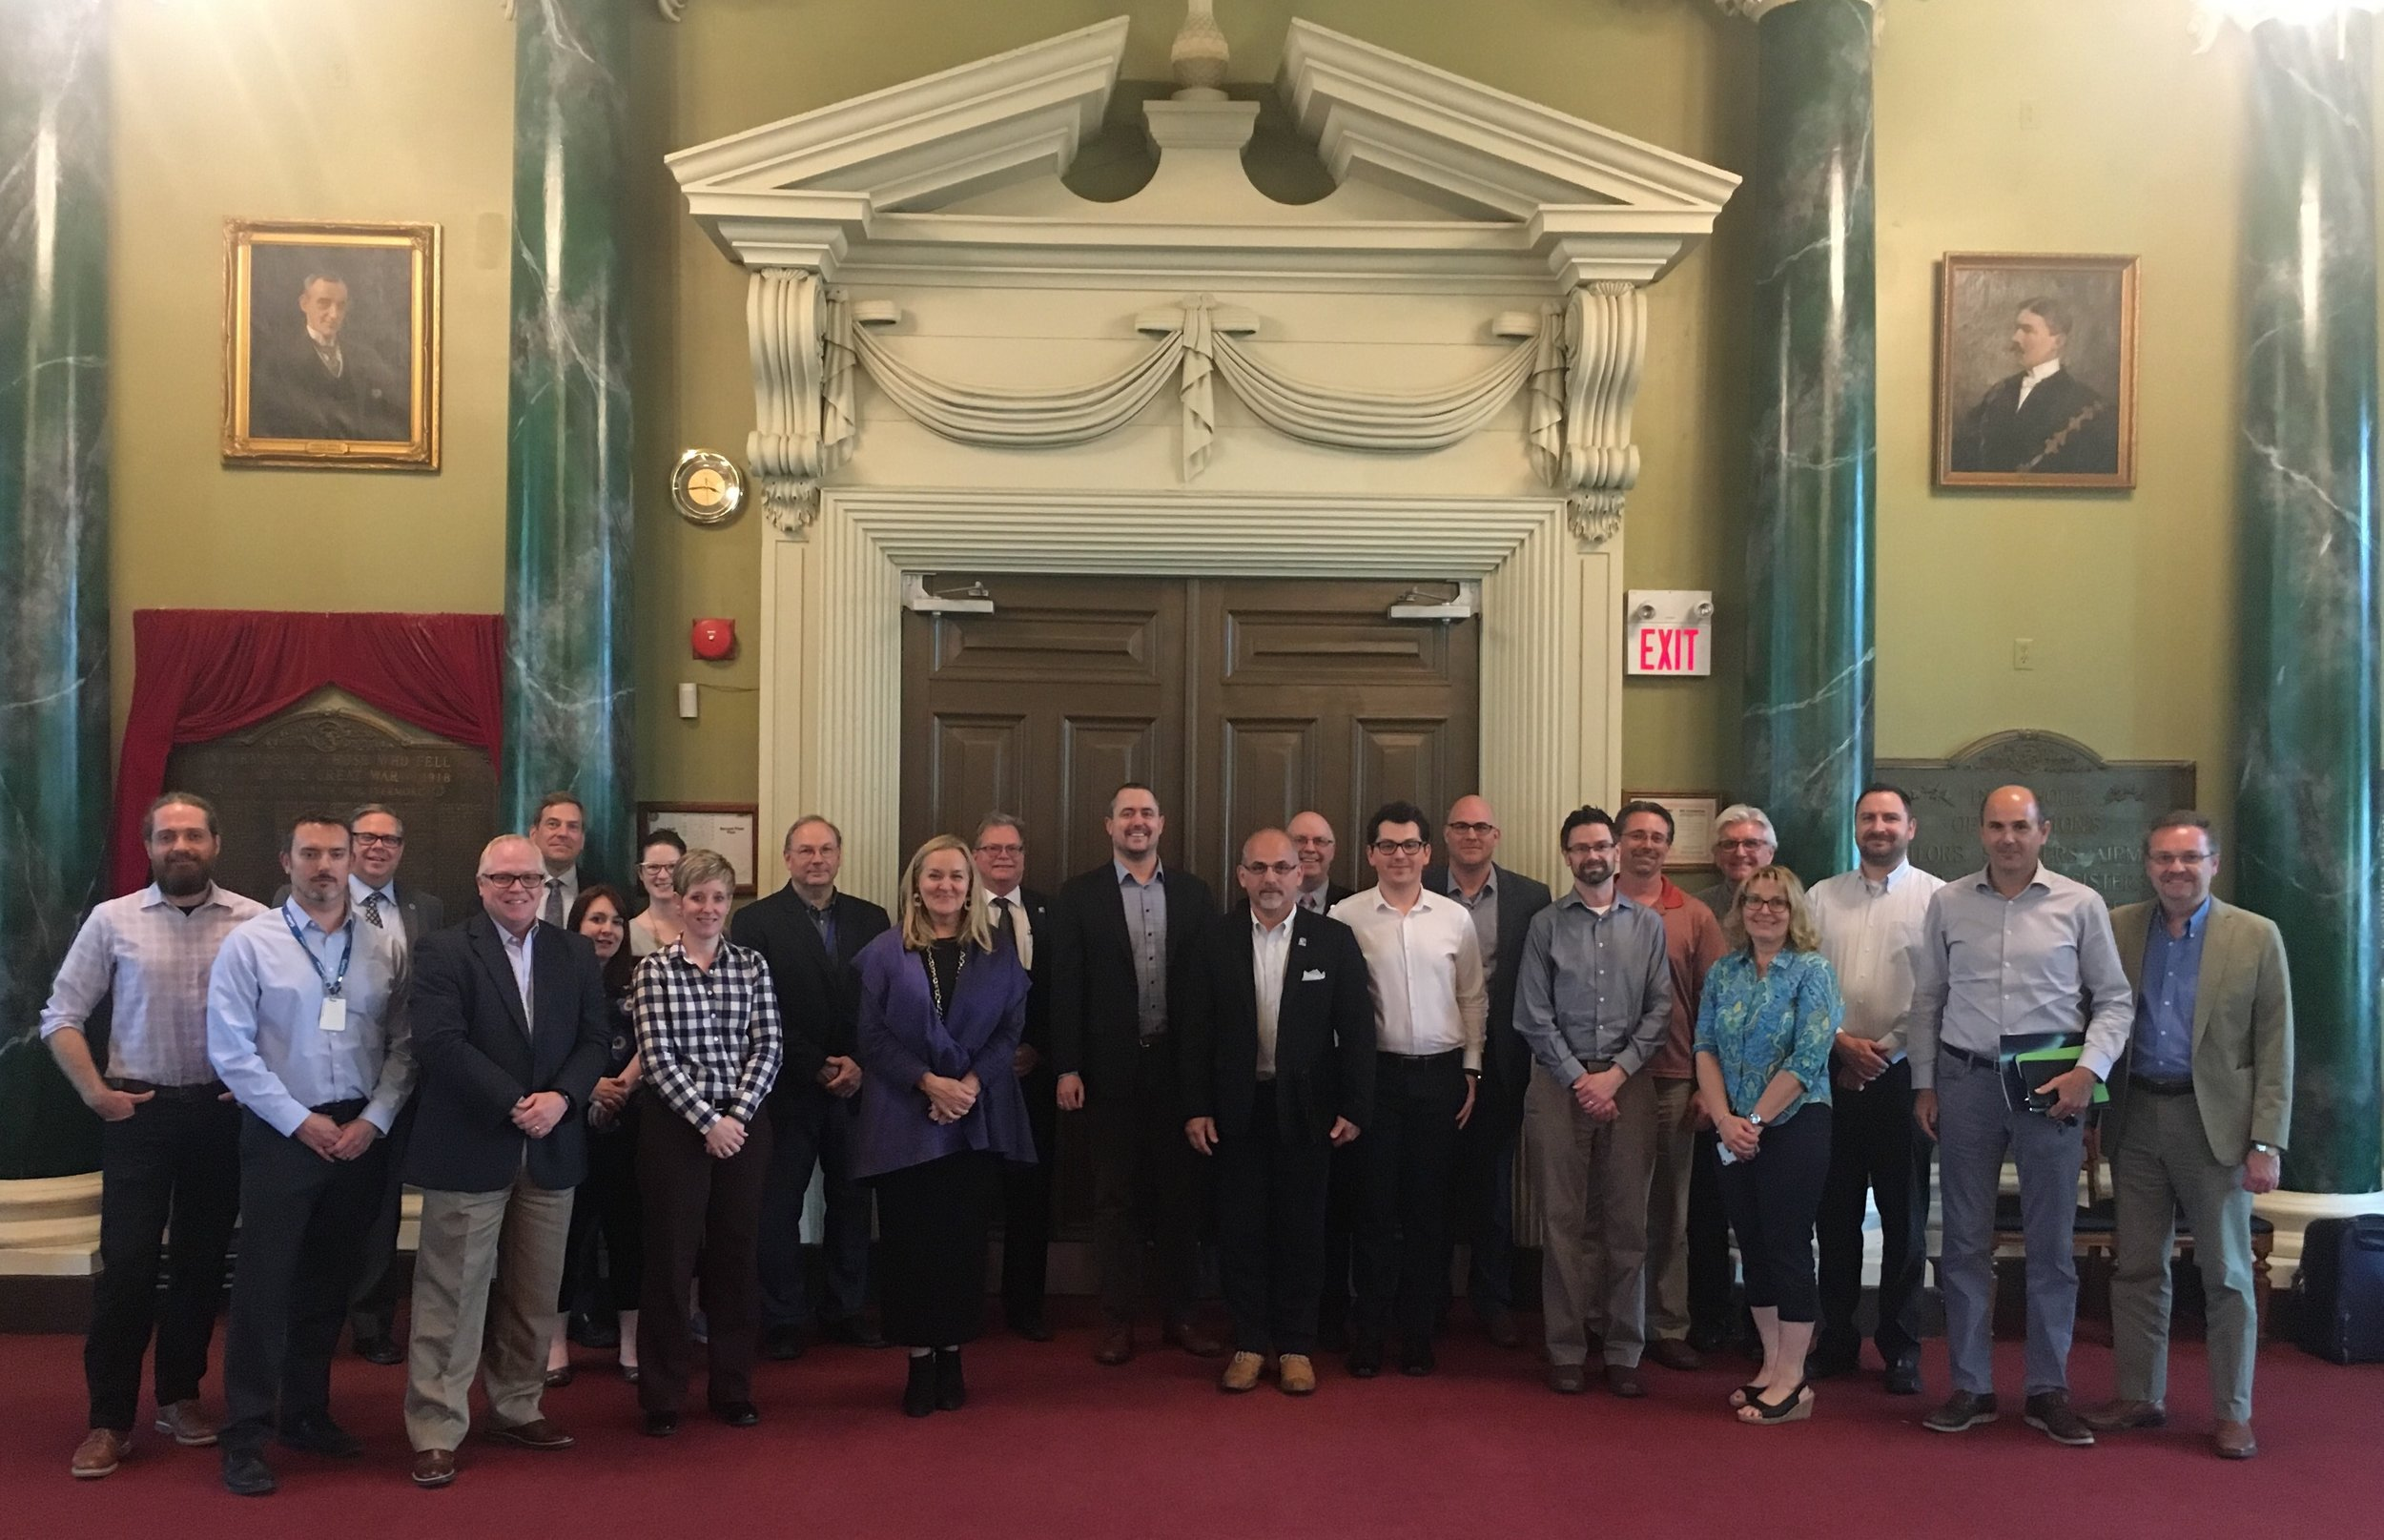 Participants at the Eastern Ontario Municipal Data Roundtable, hosted by the WCCD and the City of Kingston, at the Kingston City Hall on May 24th 2018.